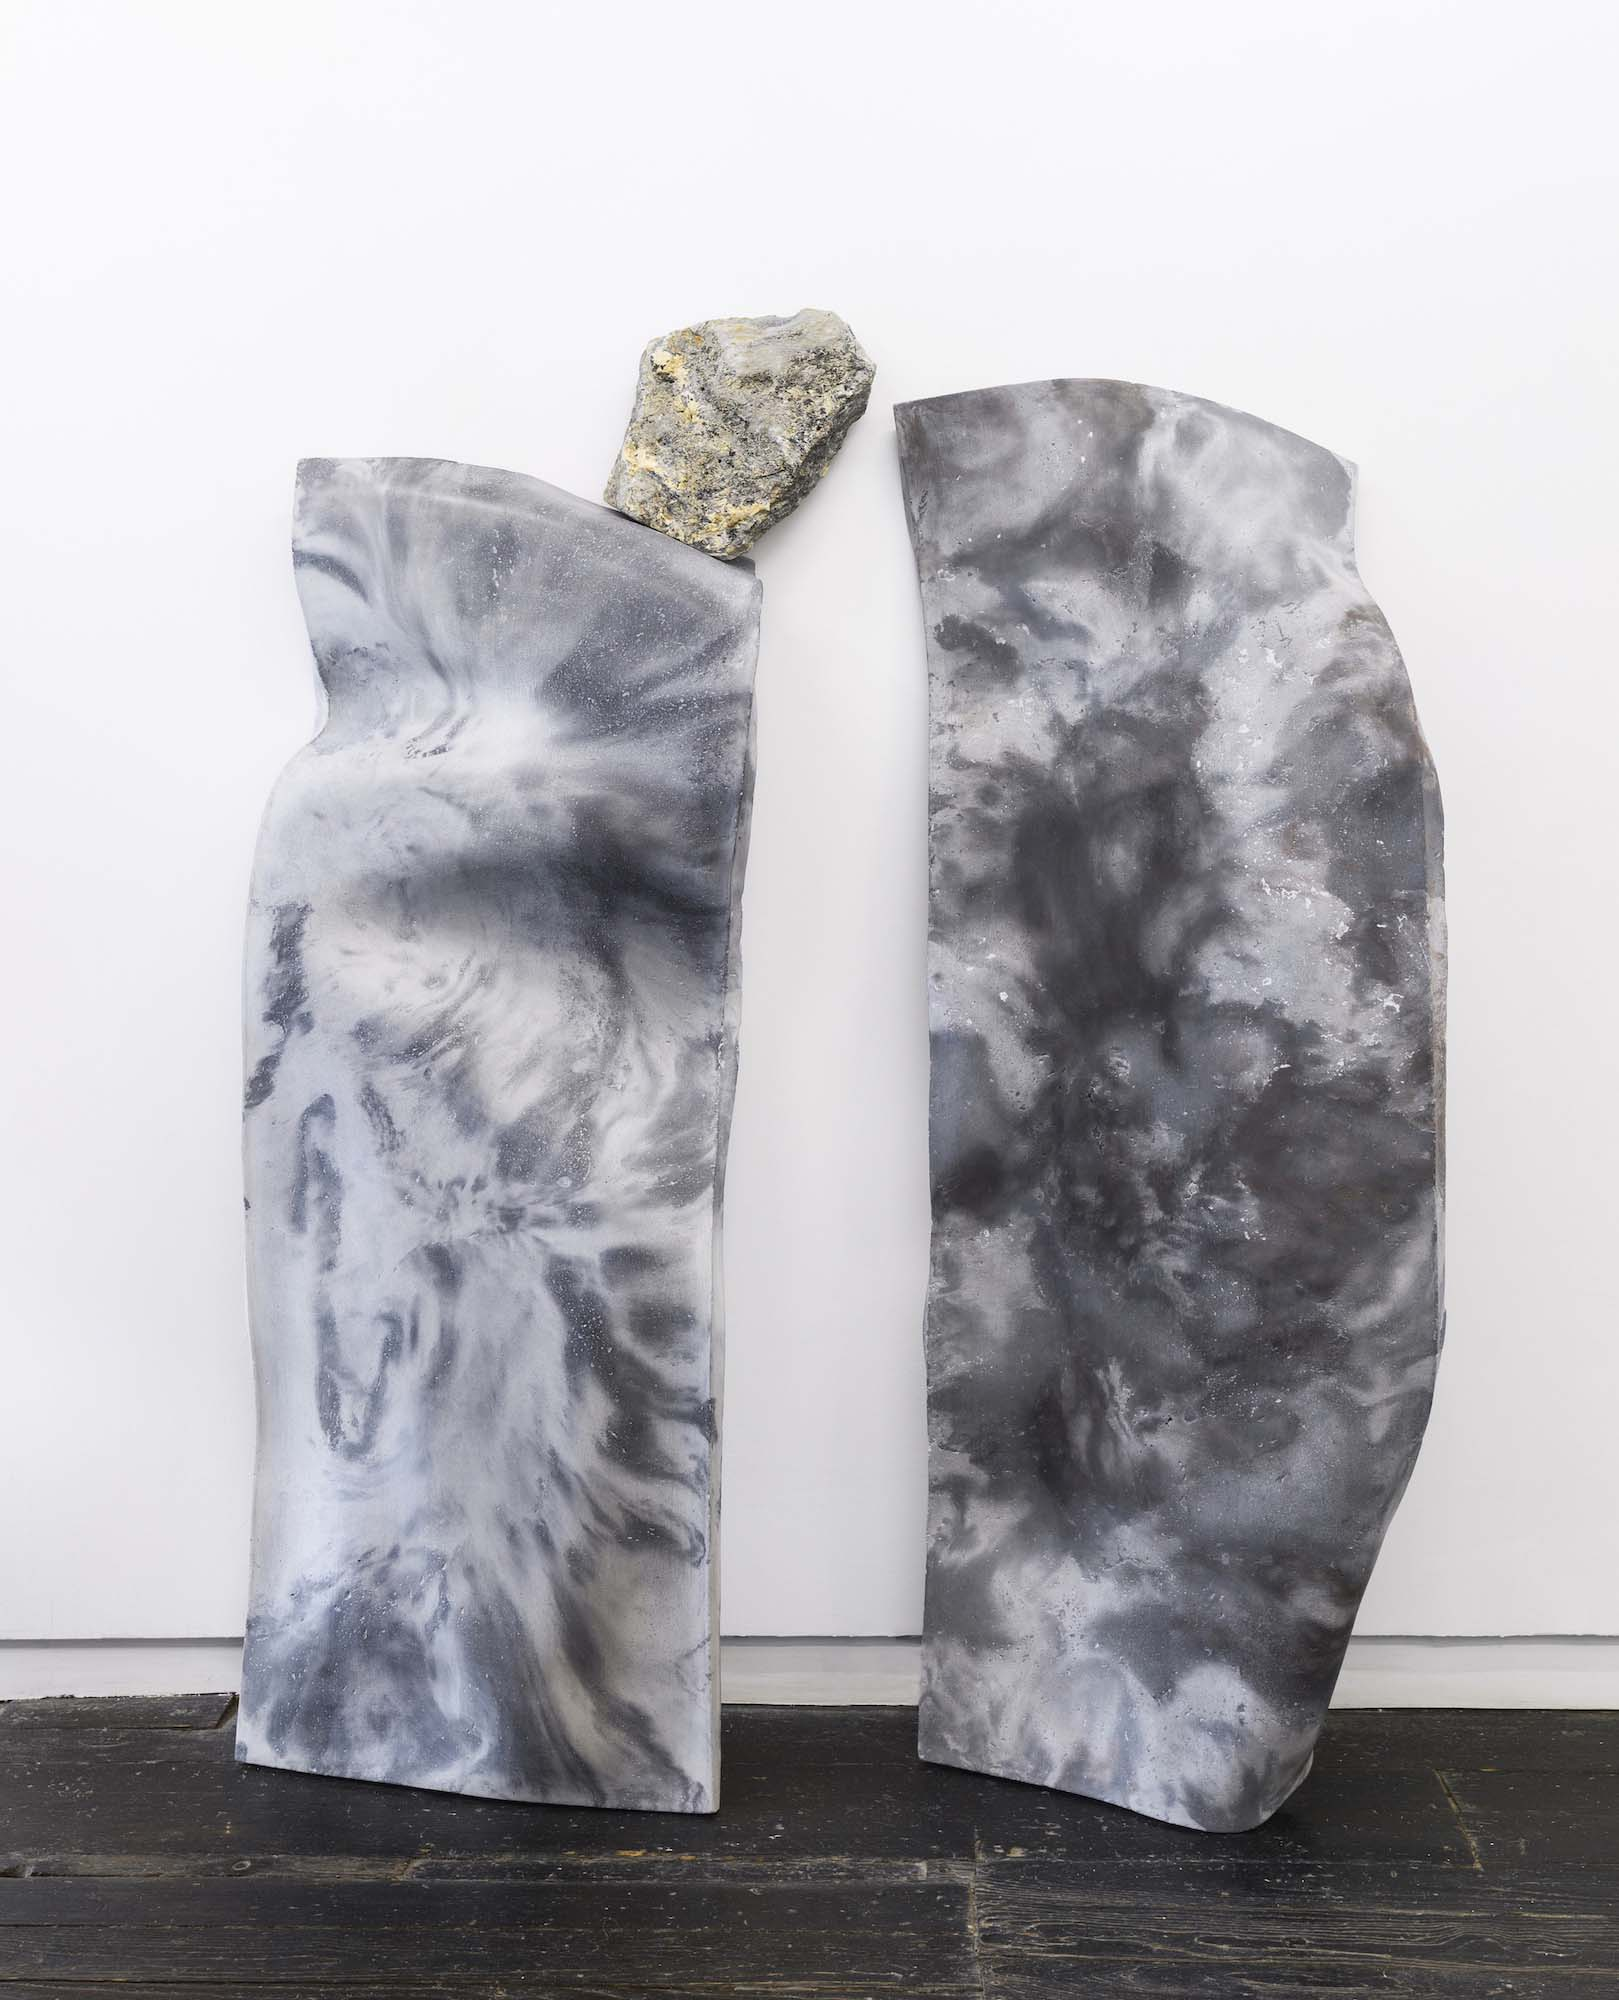 Rachel Mica Weiss, The Exchange (Fold VI & VII). 2018. Cast concrete, pigment, marble. 70.5